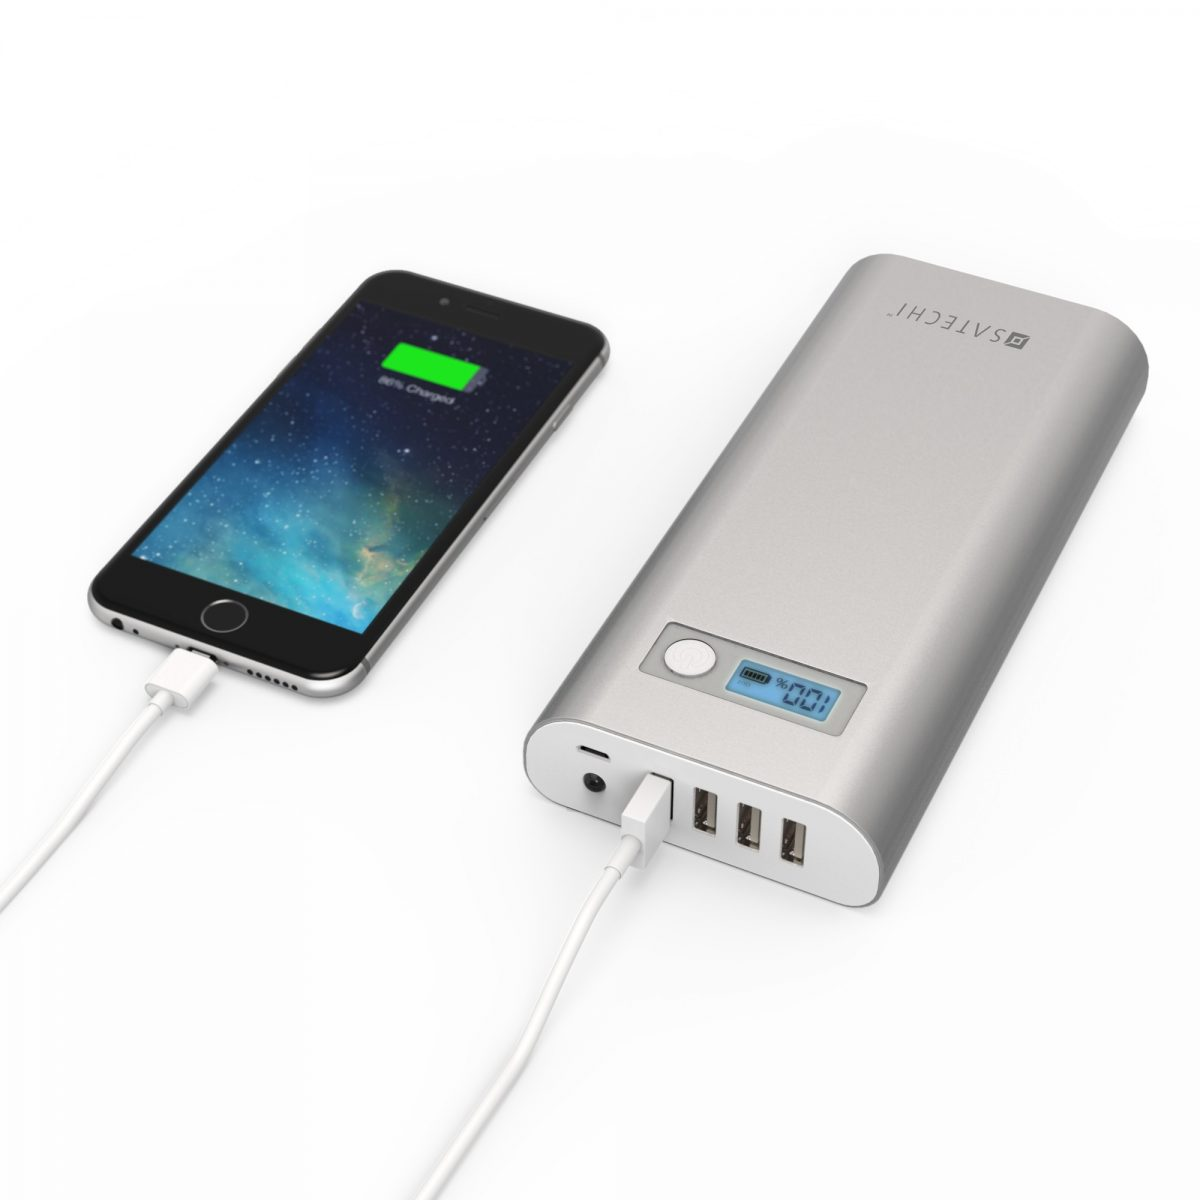 Satechi's New Aluminum Battery Chargers Are Available, and They Charge EVERYTHING